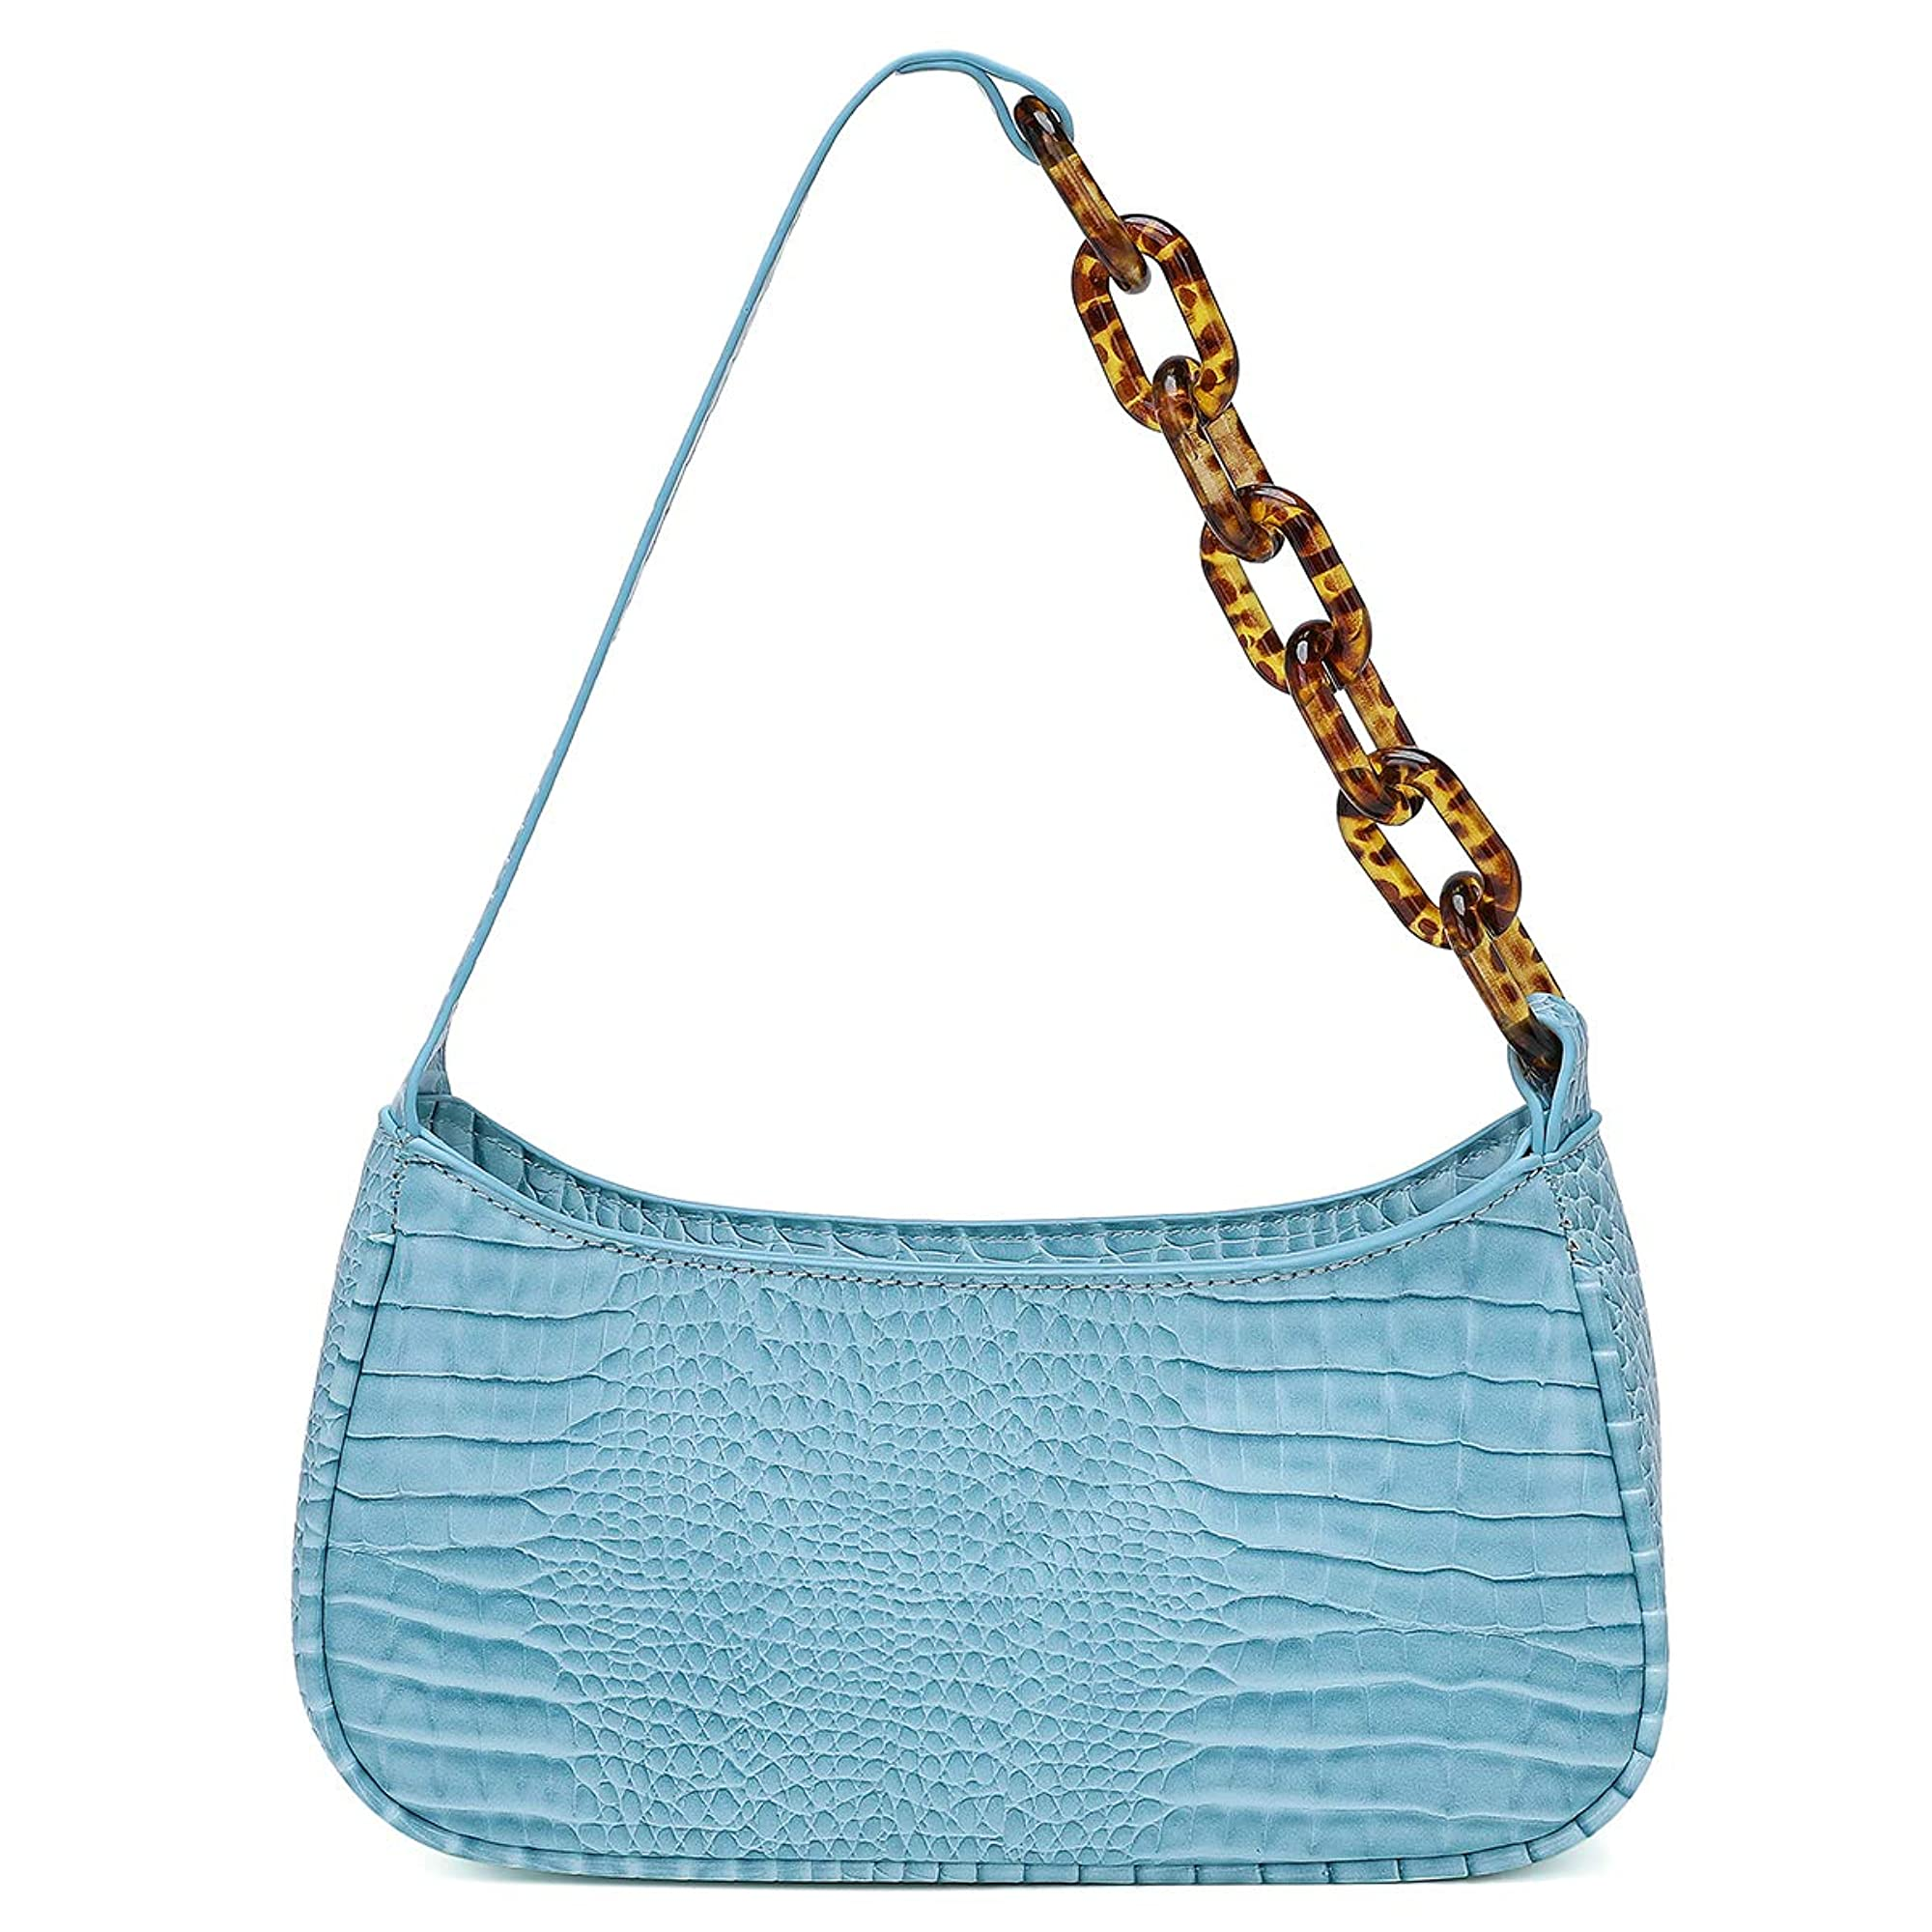 Classic Clutch Purse Shoulder Bag